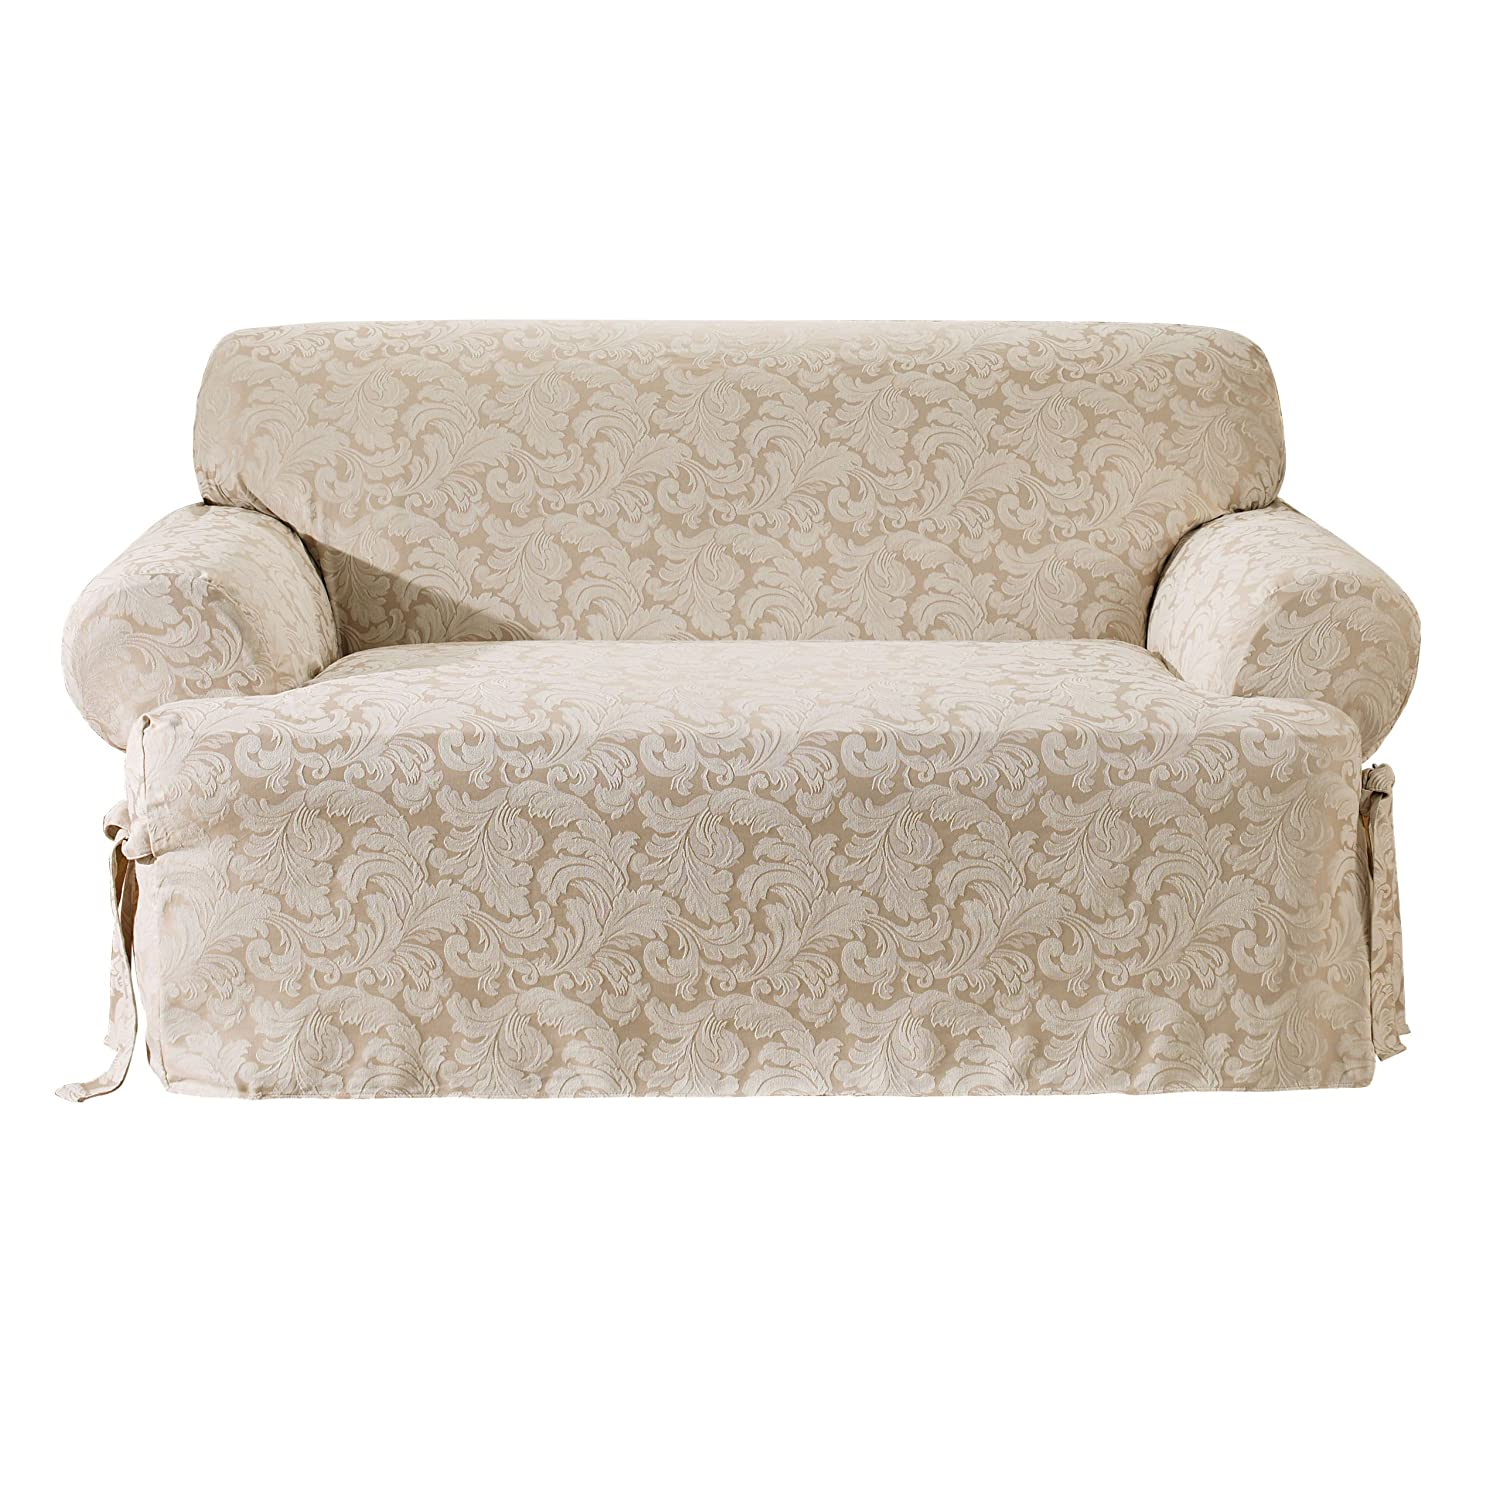 Lovely 2 Piece T Cushion Sofa Slipcover Marmsweb Marmsweb